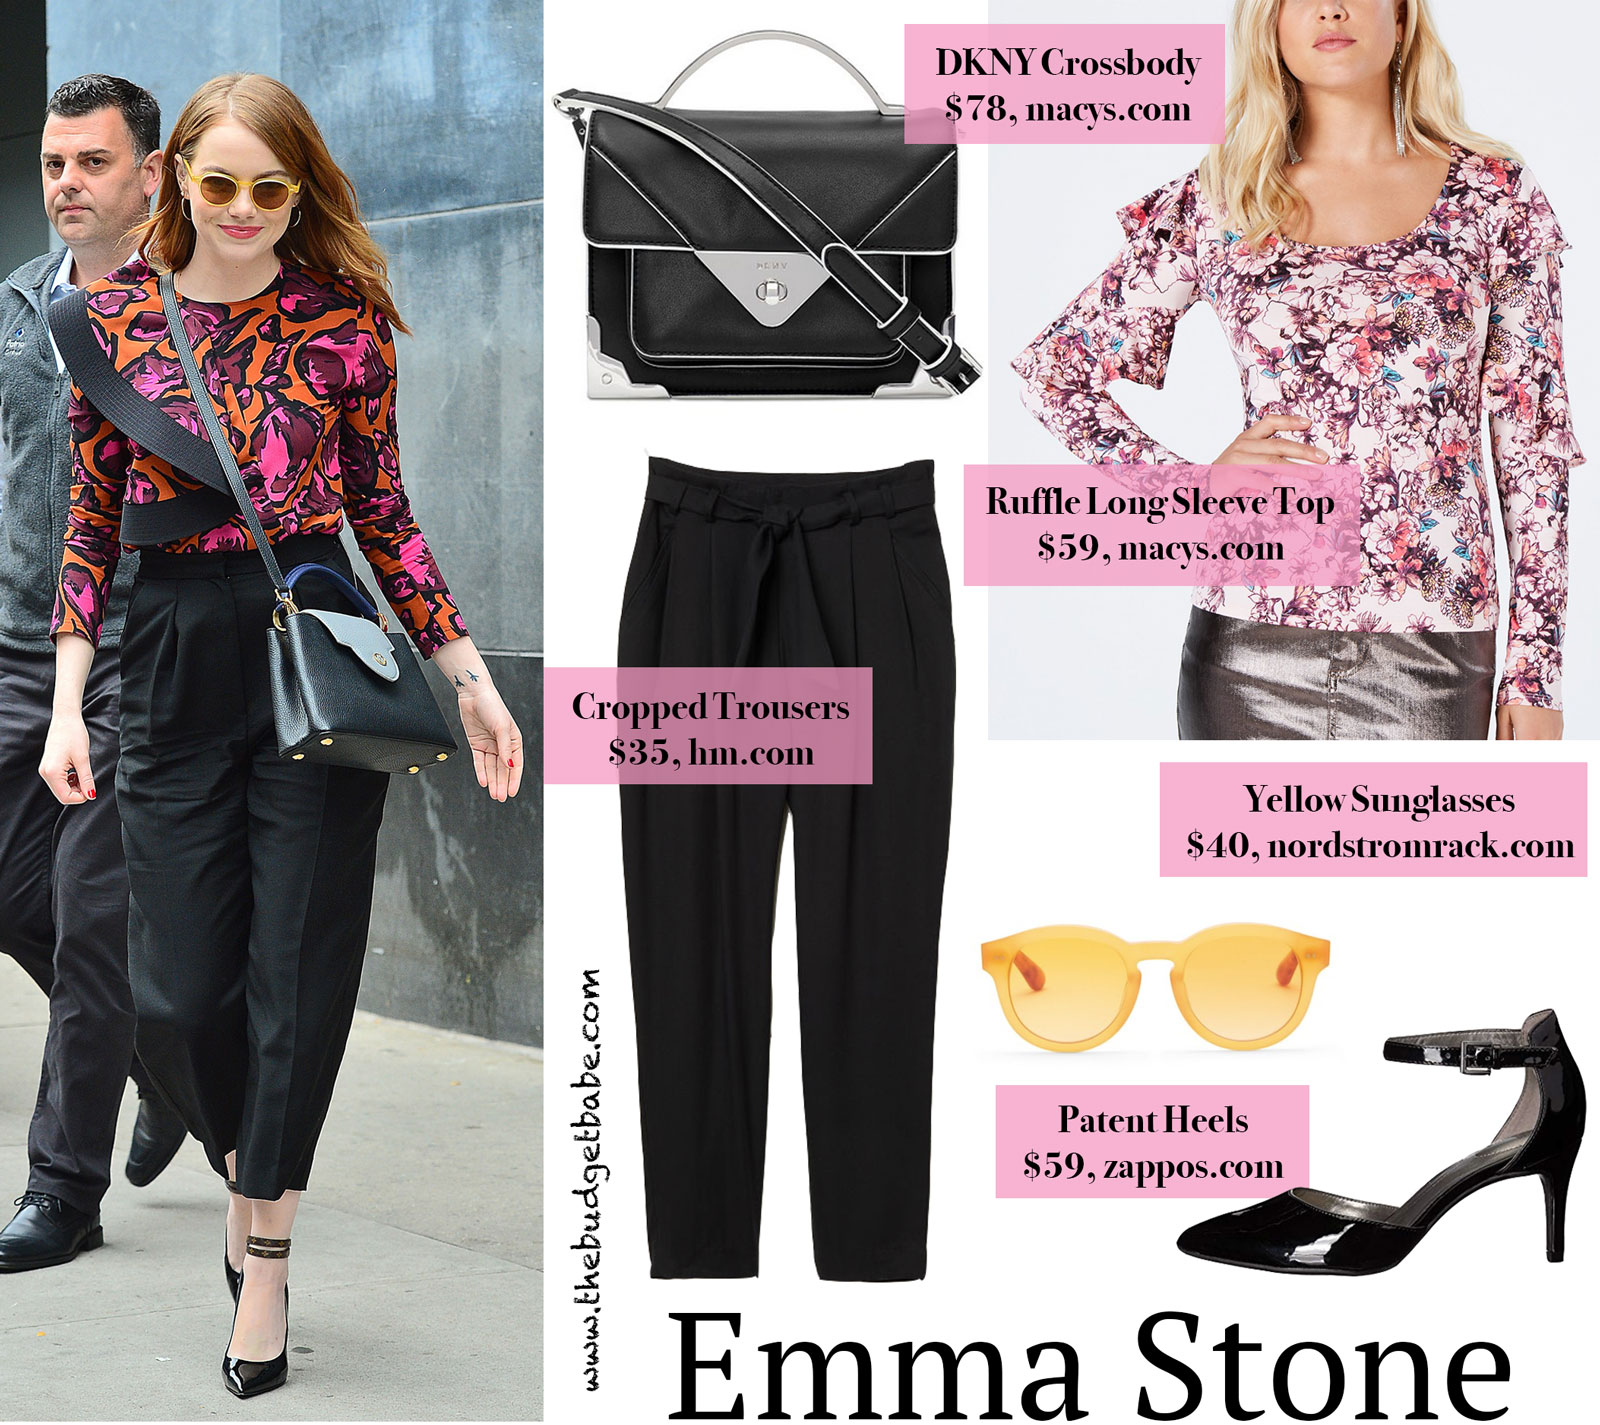 b6490b7cdb Emma Stone Ruffle Top and Black Trousers Look for Less